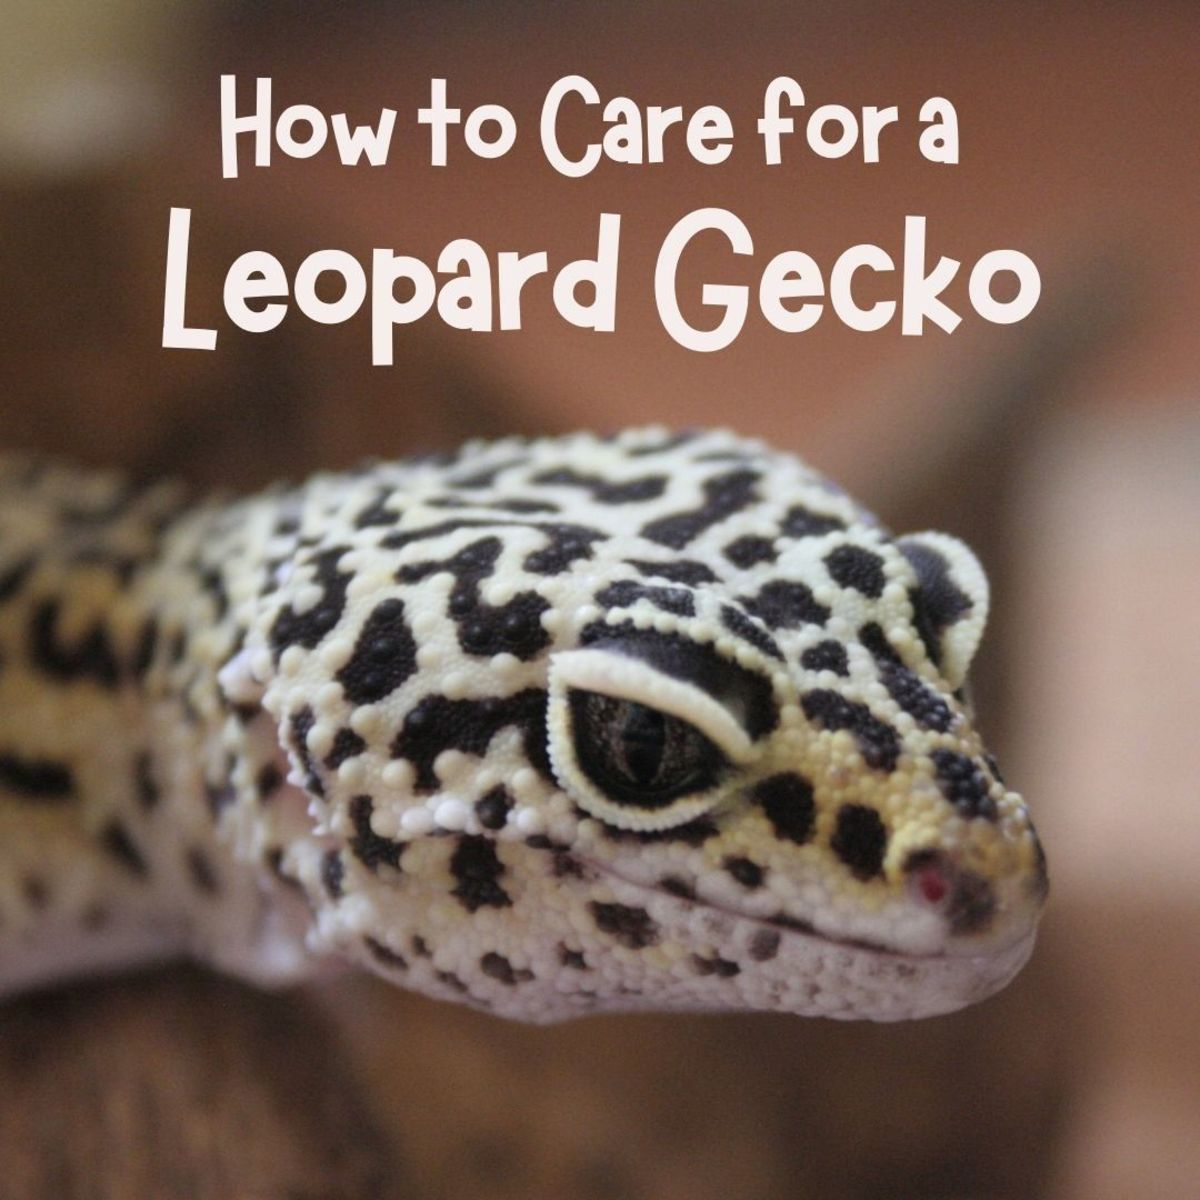 Leopard geckos are fun, interesting pets, but they do require some specific conditions to thrive.